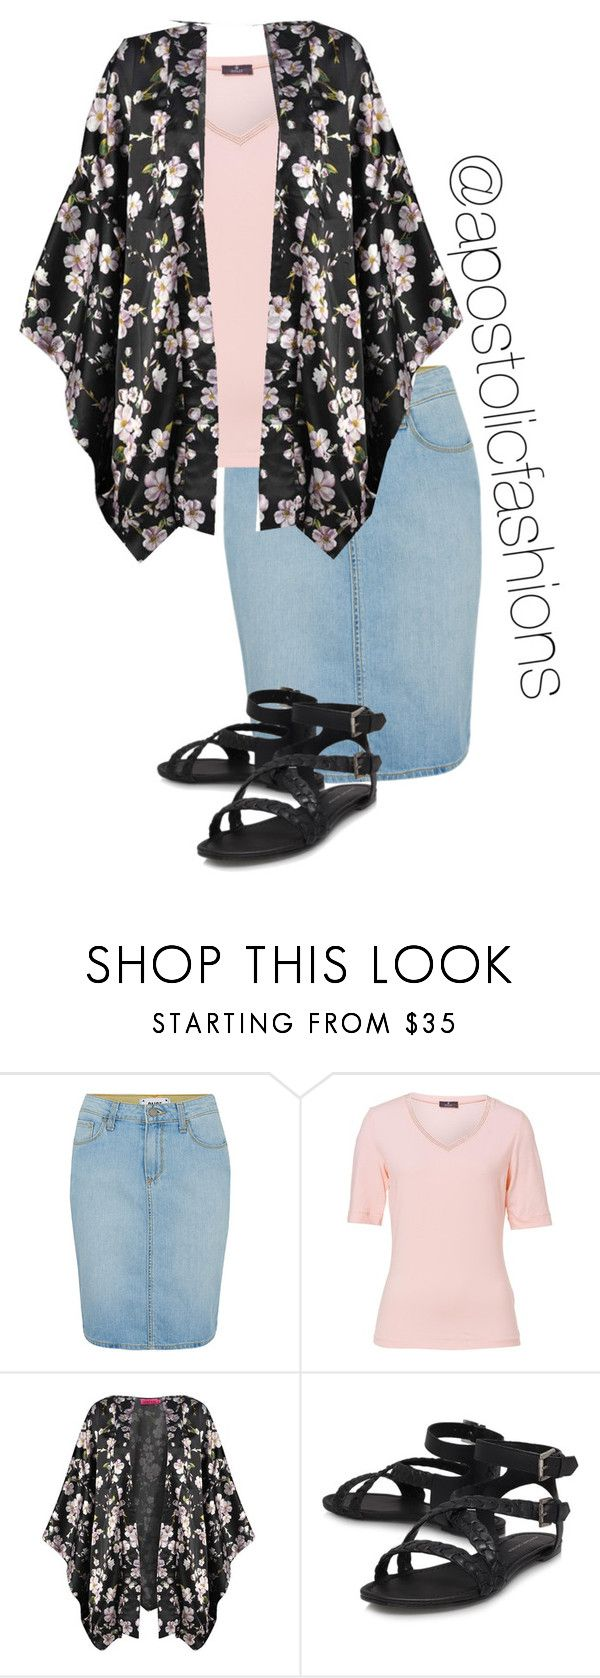 """""""Apostolic Fashions #1279"""" by apostolicfashions ❤ liked on Polyvore featuring Paige Denim, Basler and Boohoo"""